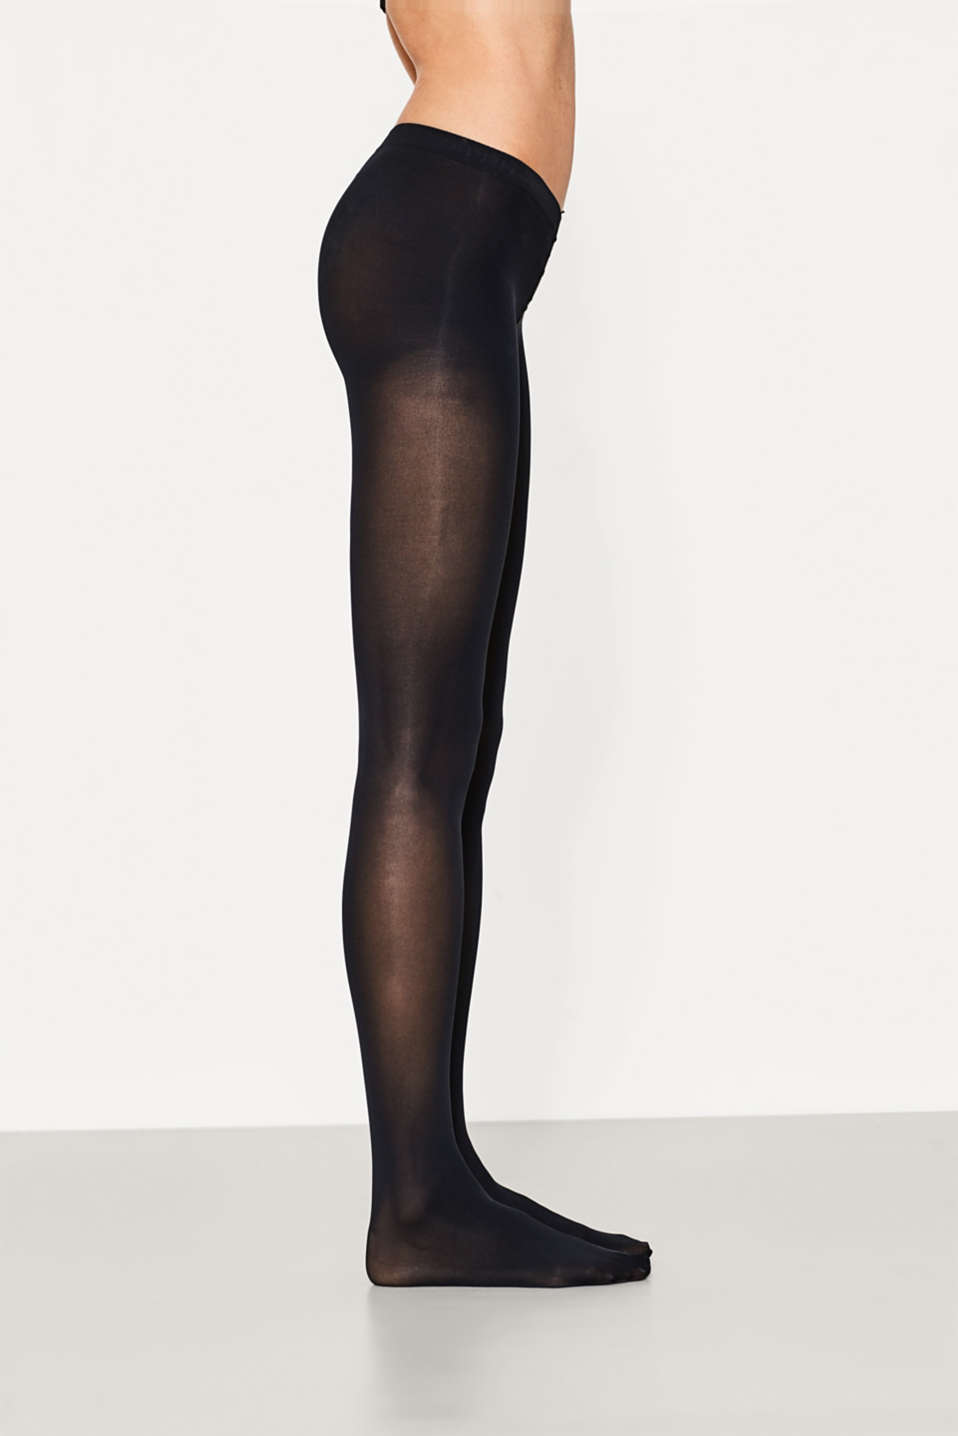 Esprit - Matte tights, 50 den